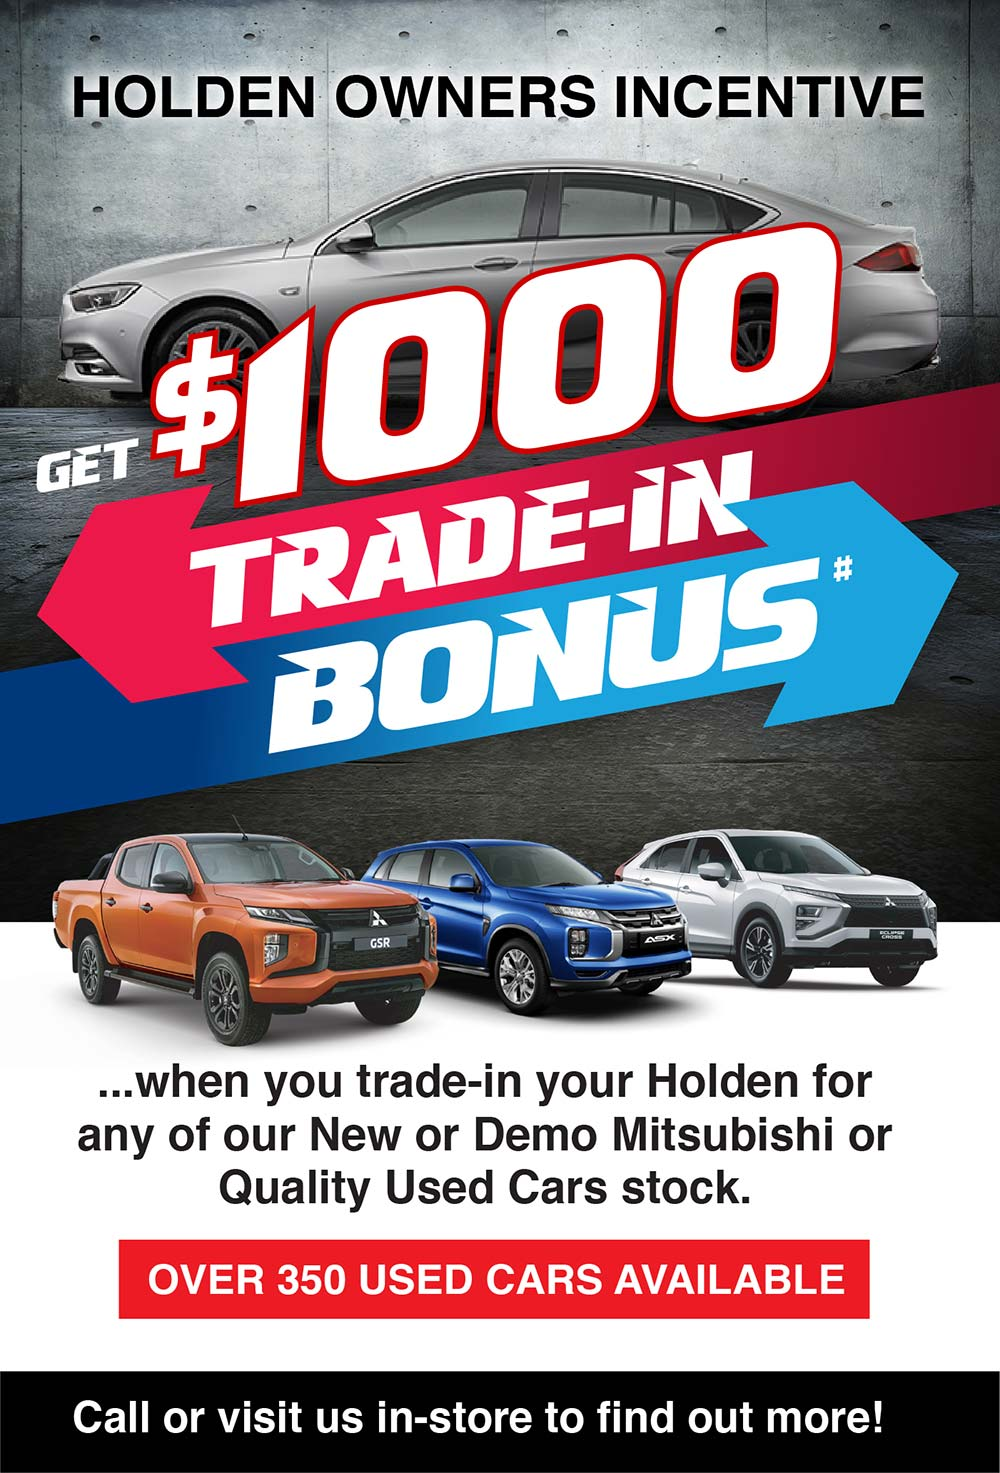 Steinborner Mitsubishi   Holden Owners Incentive Special Offer